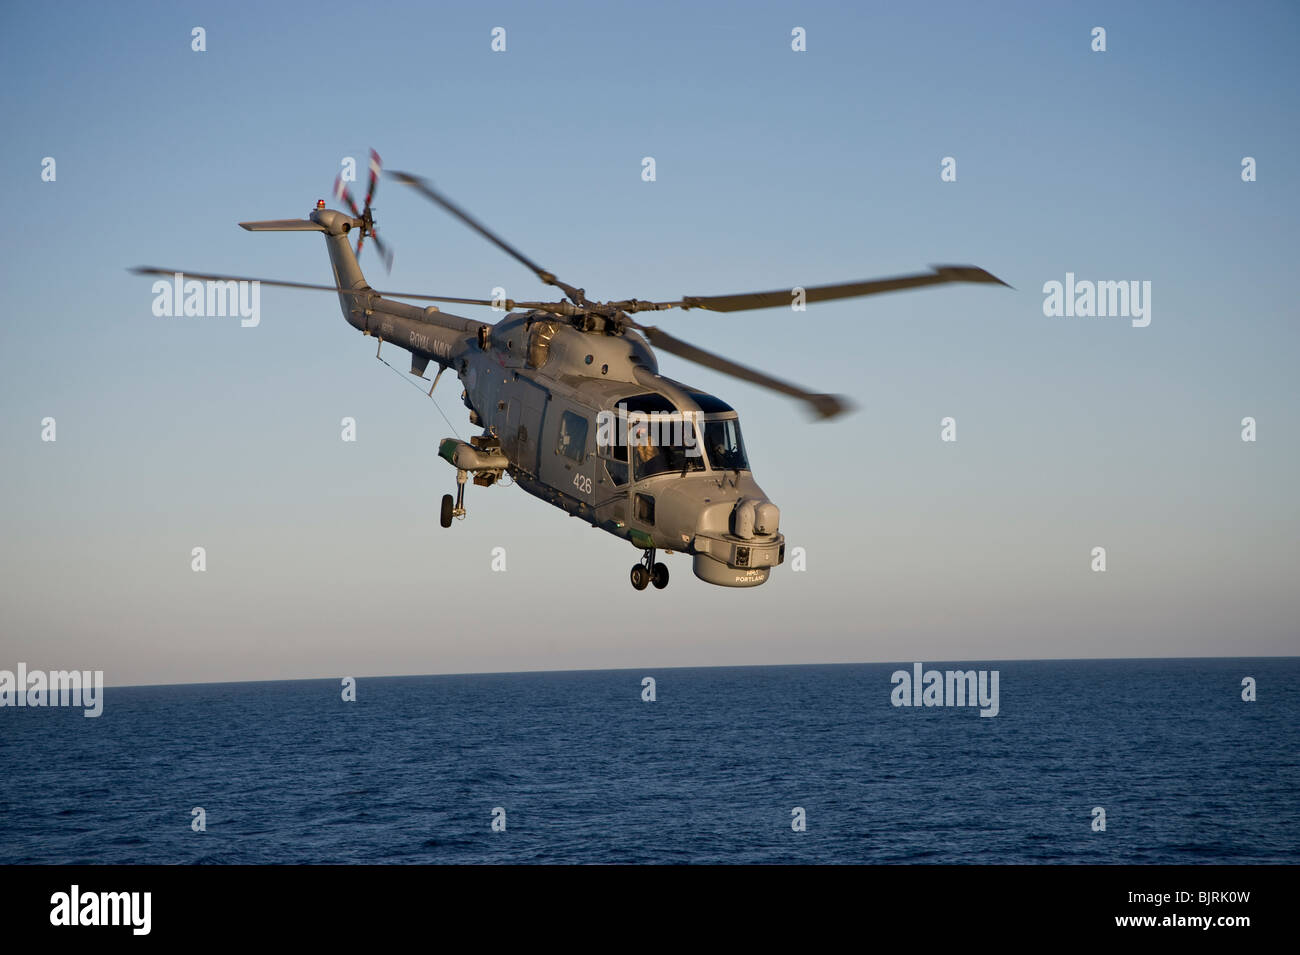 Royal Navy Mk8 Lynx helicopter in flight at sea - Stock Image